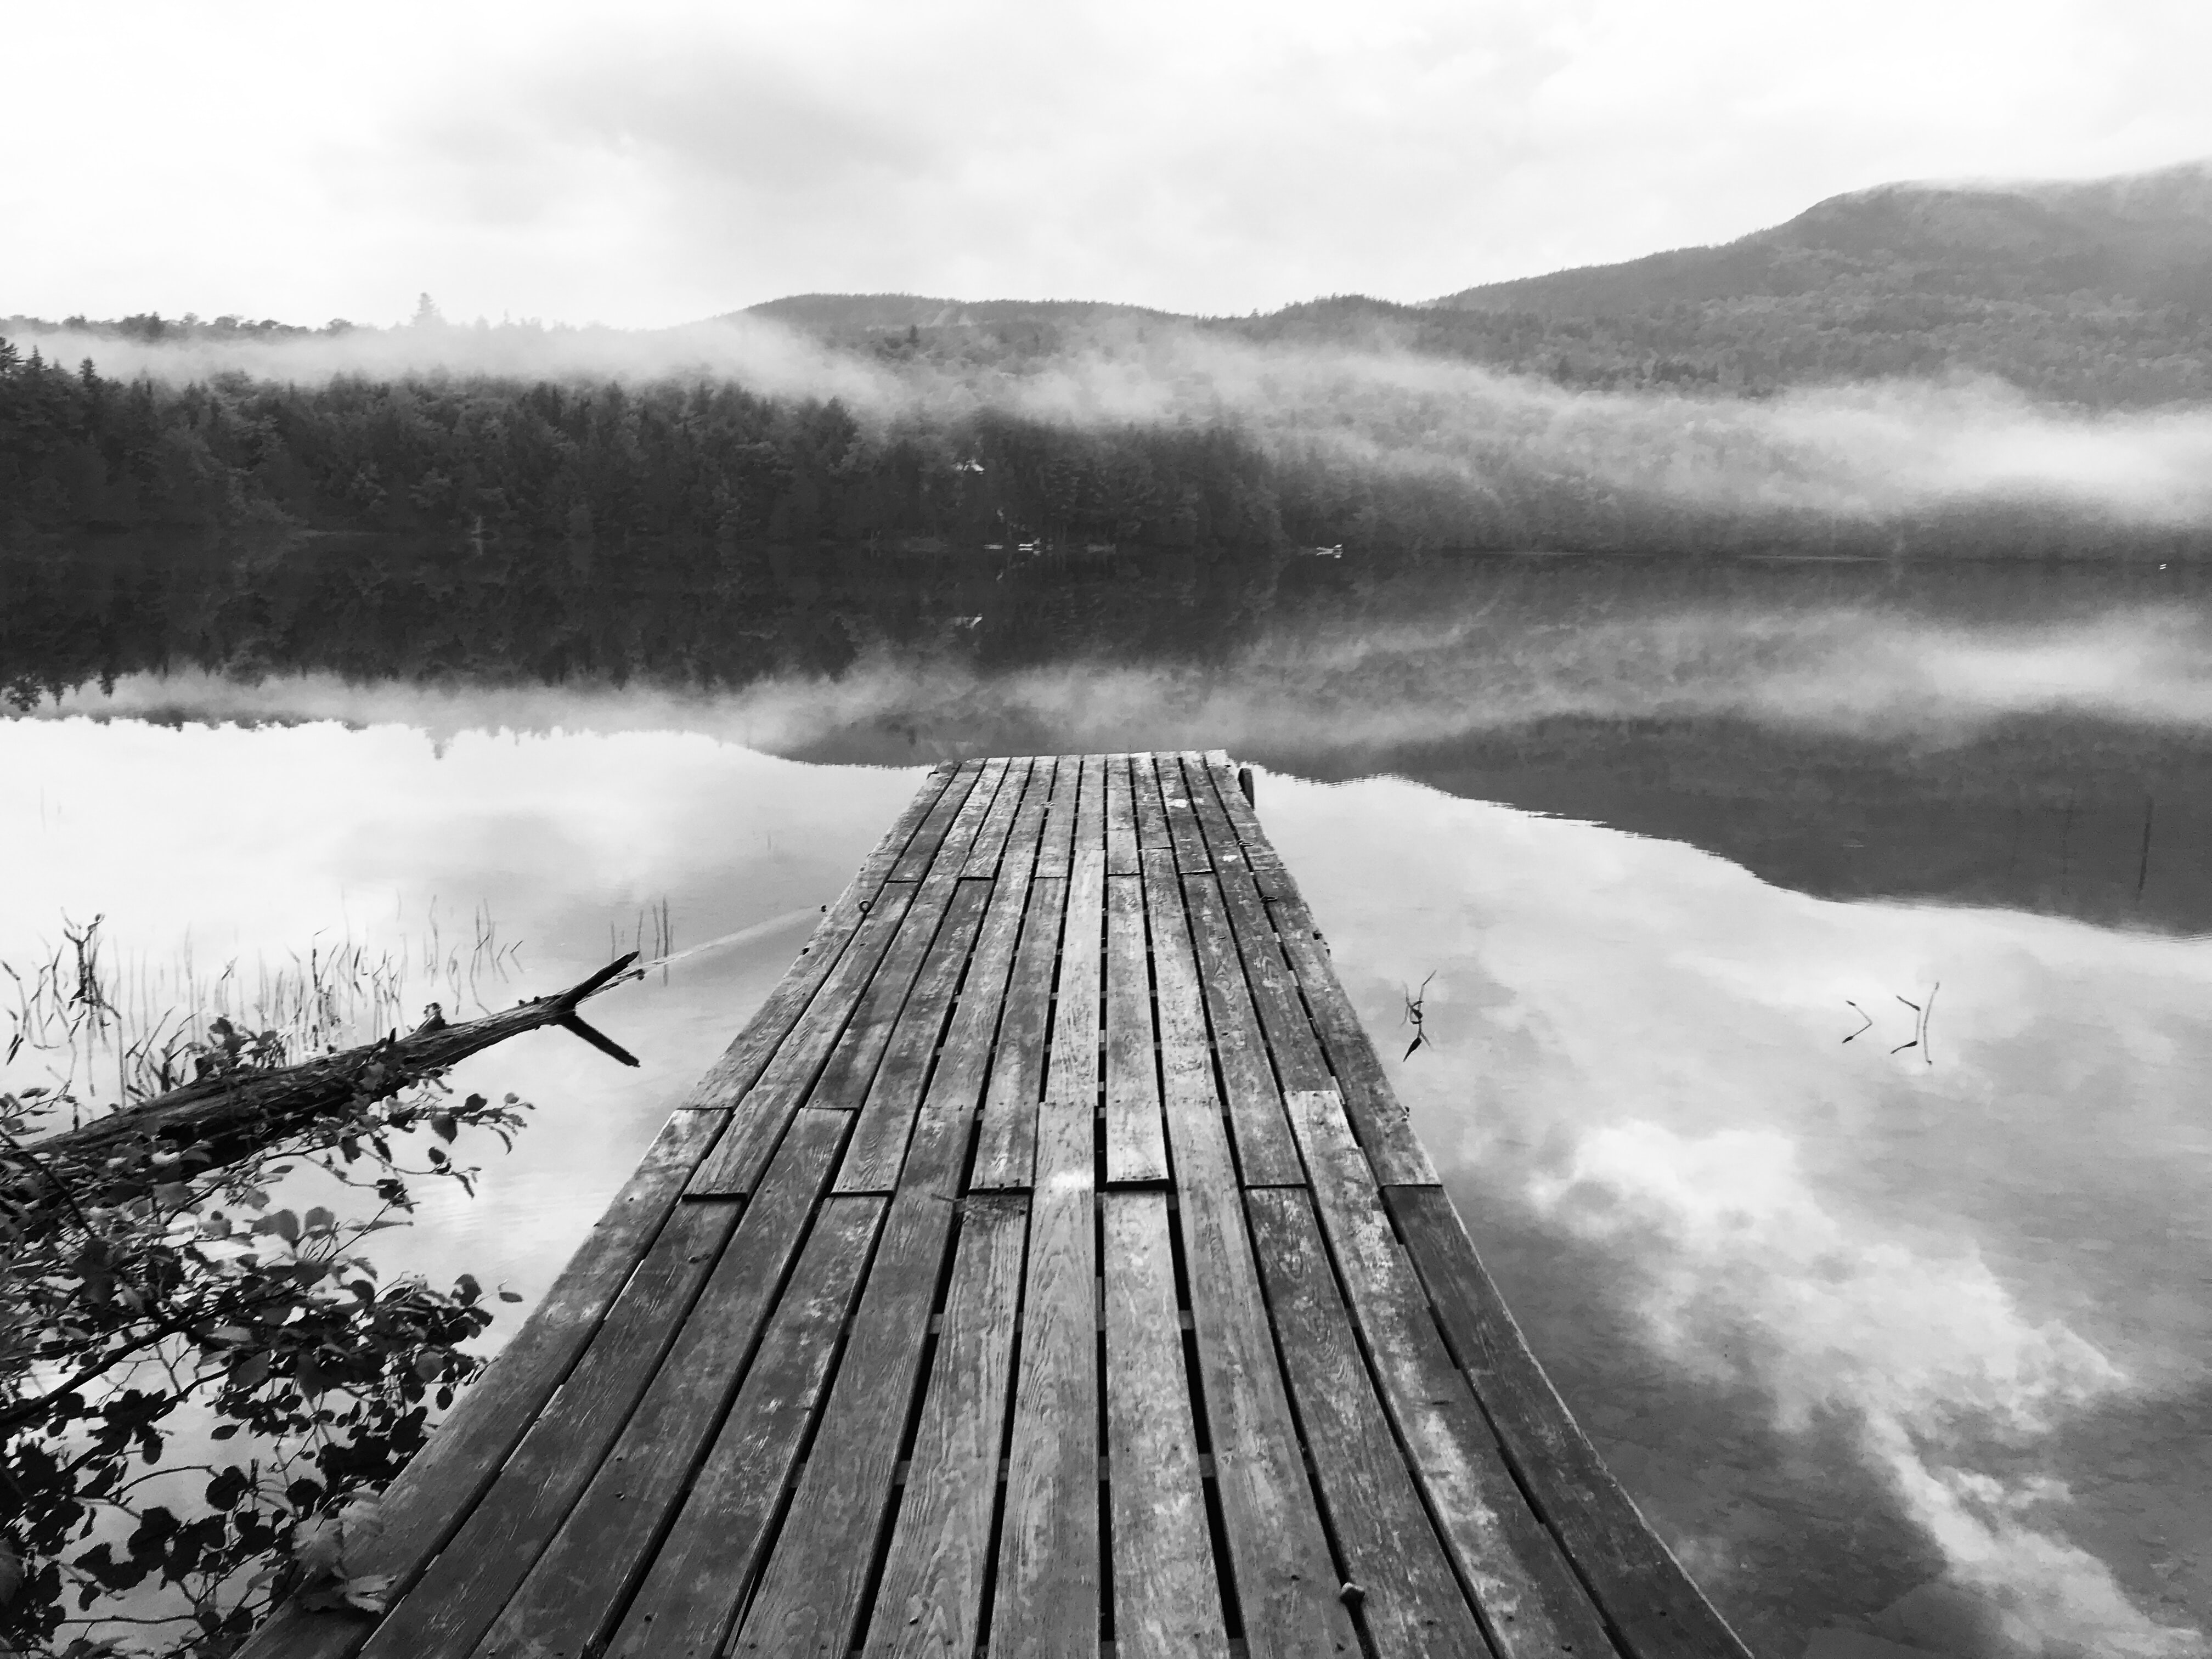 grayscale photography of dock beside body of water